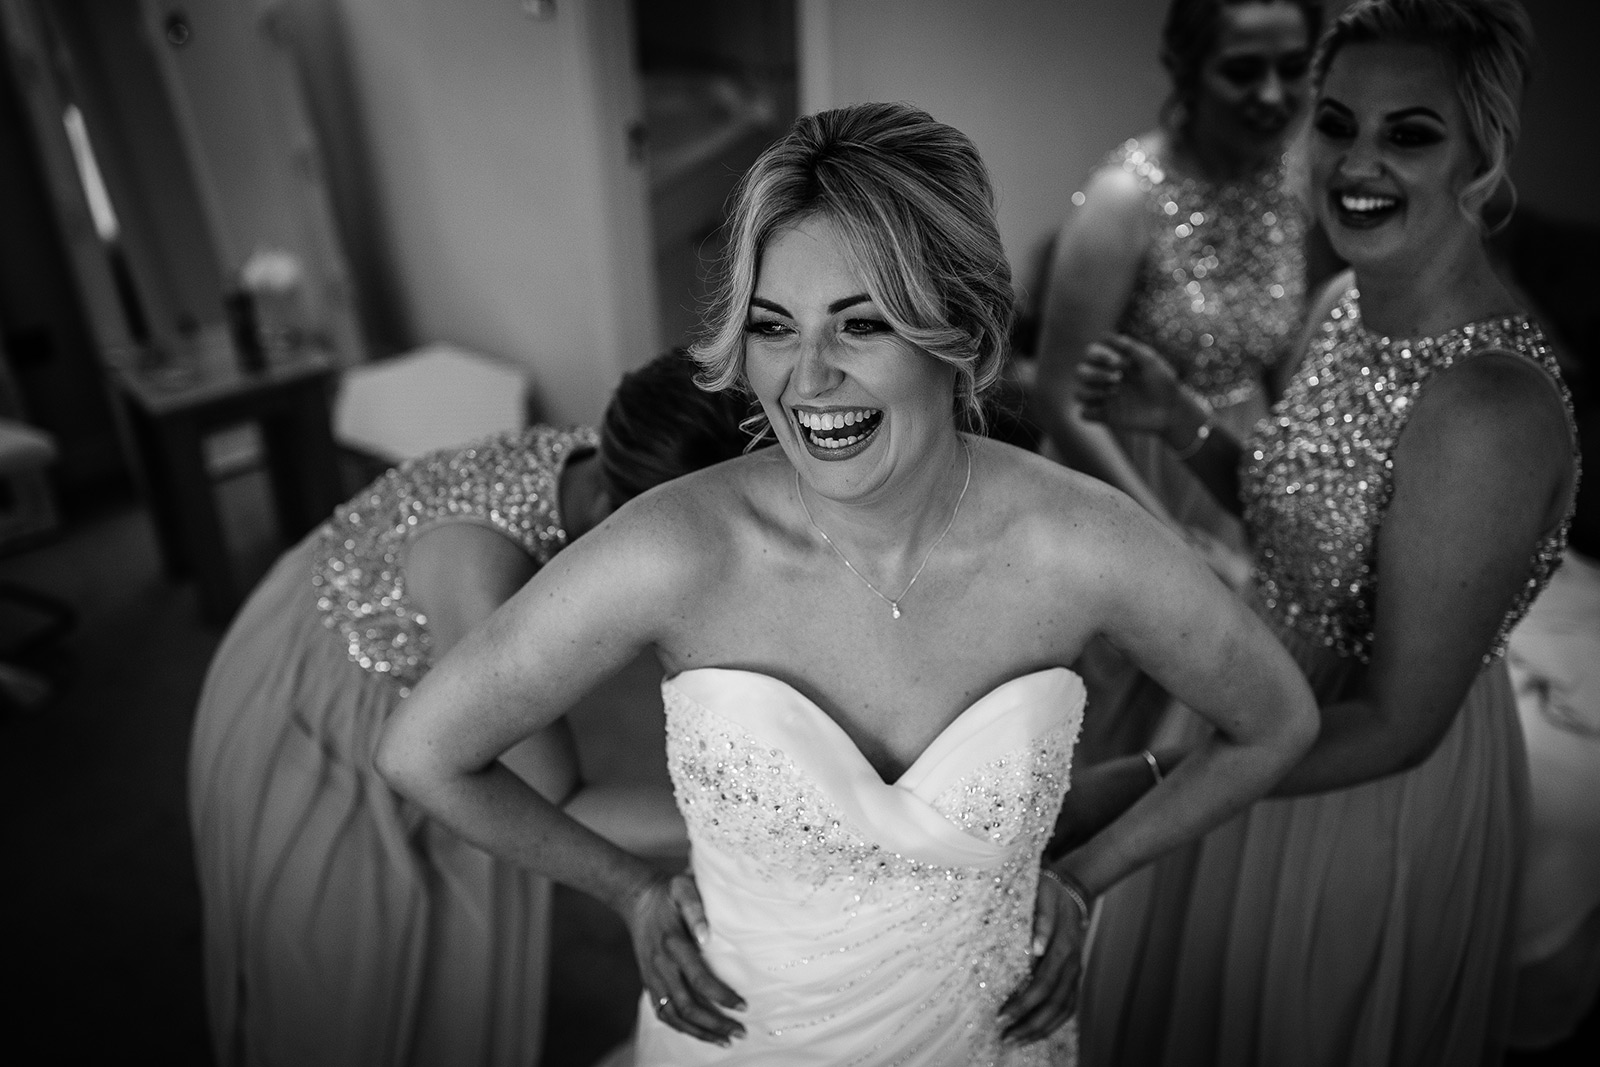 The bride almost ready during her Sandhole Oak Barn Wedding in Cheshire